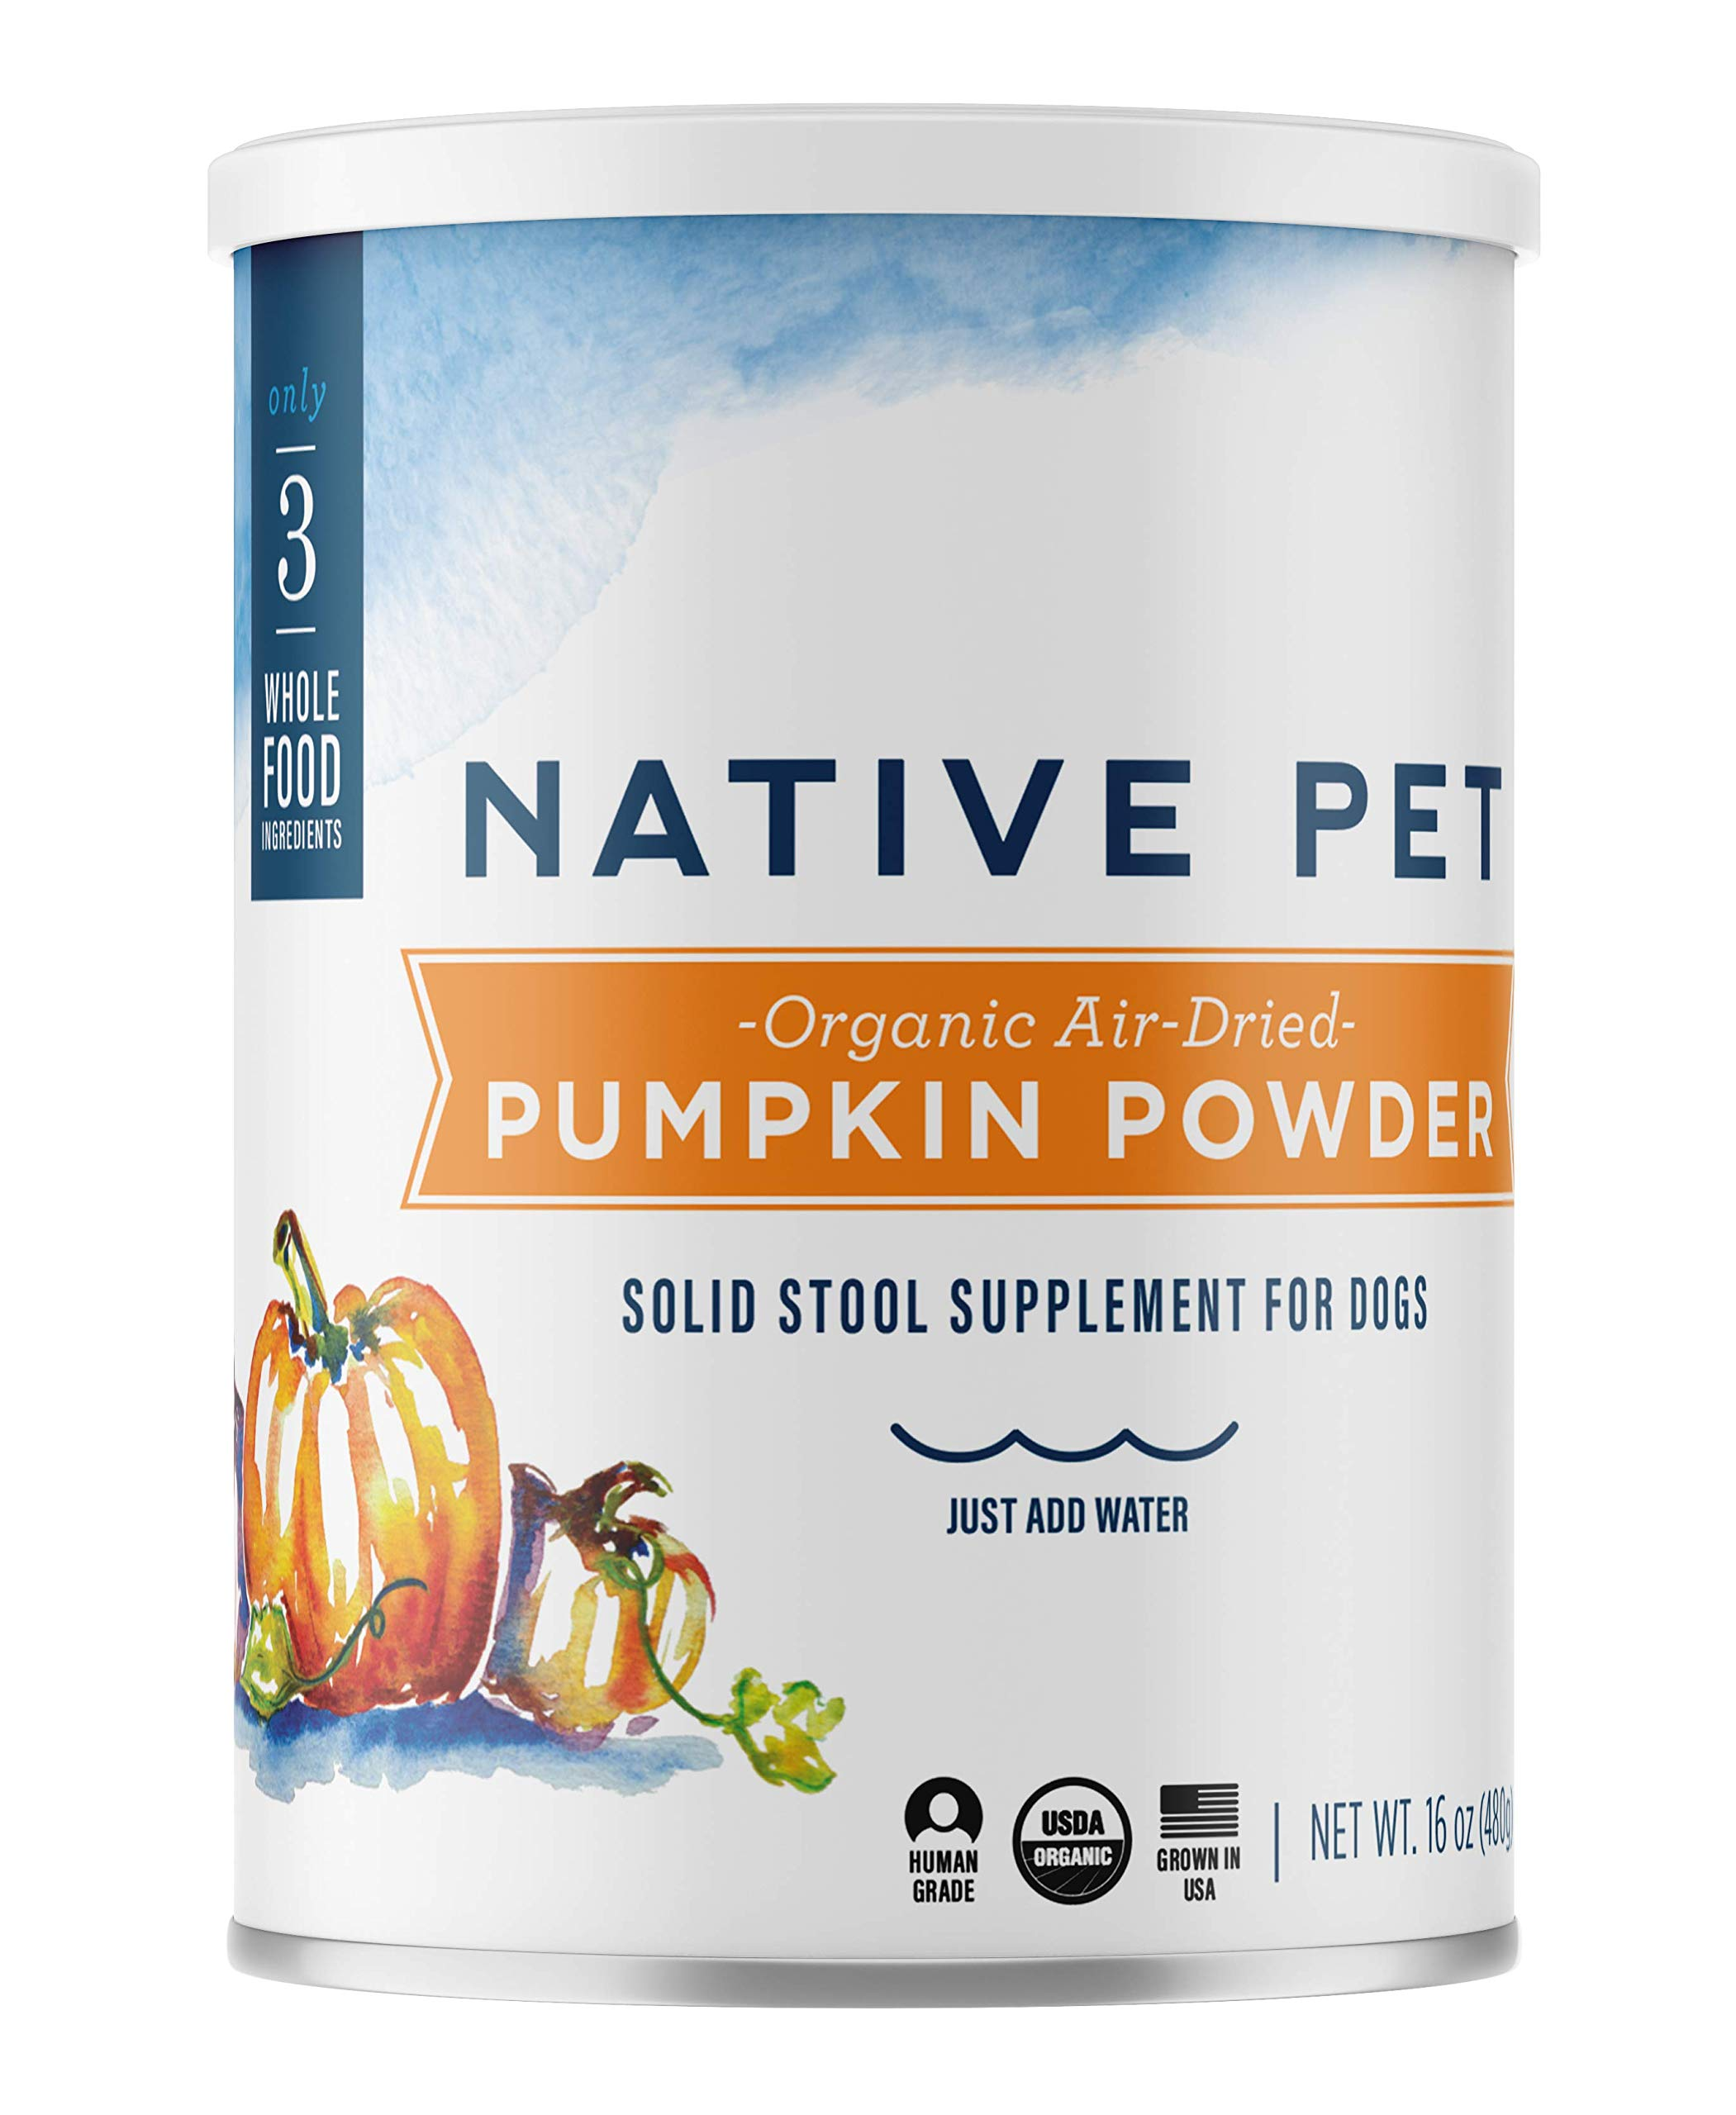 Native Pet Organic Pumpkin for Dogs (8 oz, 16 oz) - All-Natural, Organic Fiber for Dogs - Mix with Water to Create Delicious Pumpkin Puree - Prevent Waste with a Canned Pumpkin Alternative! (16 oz) by Native Pet